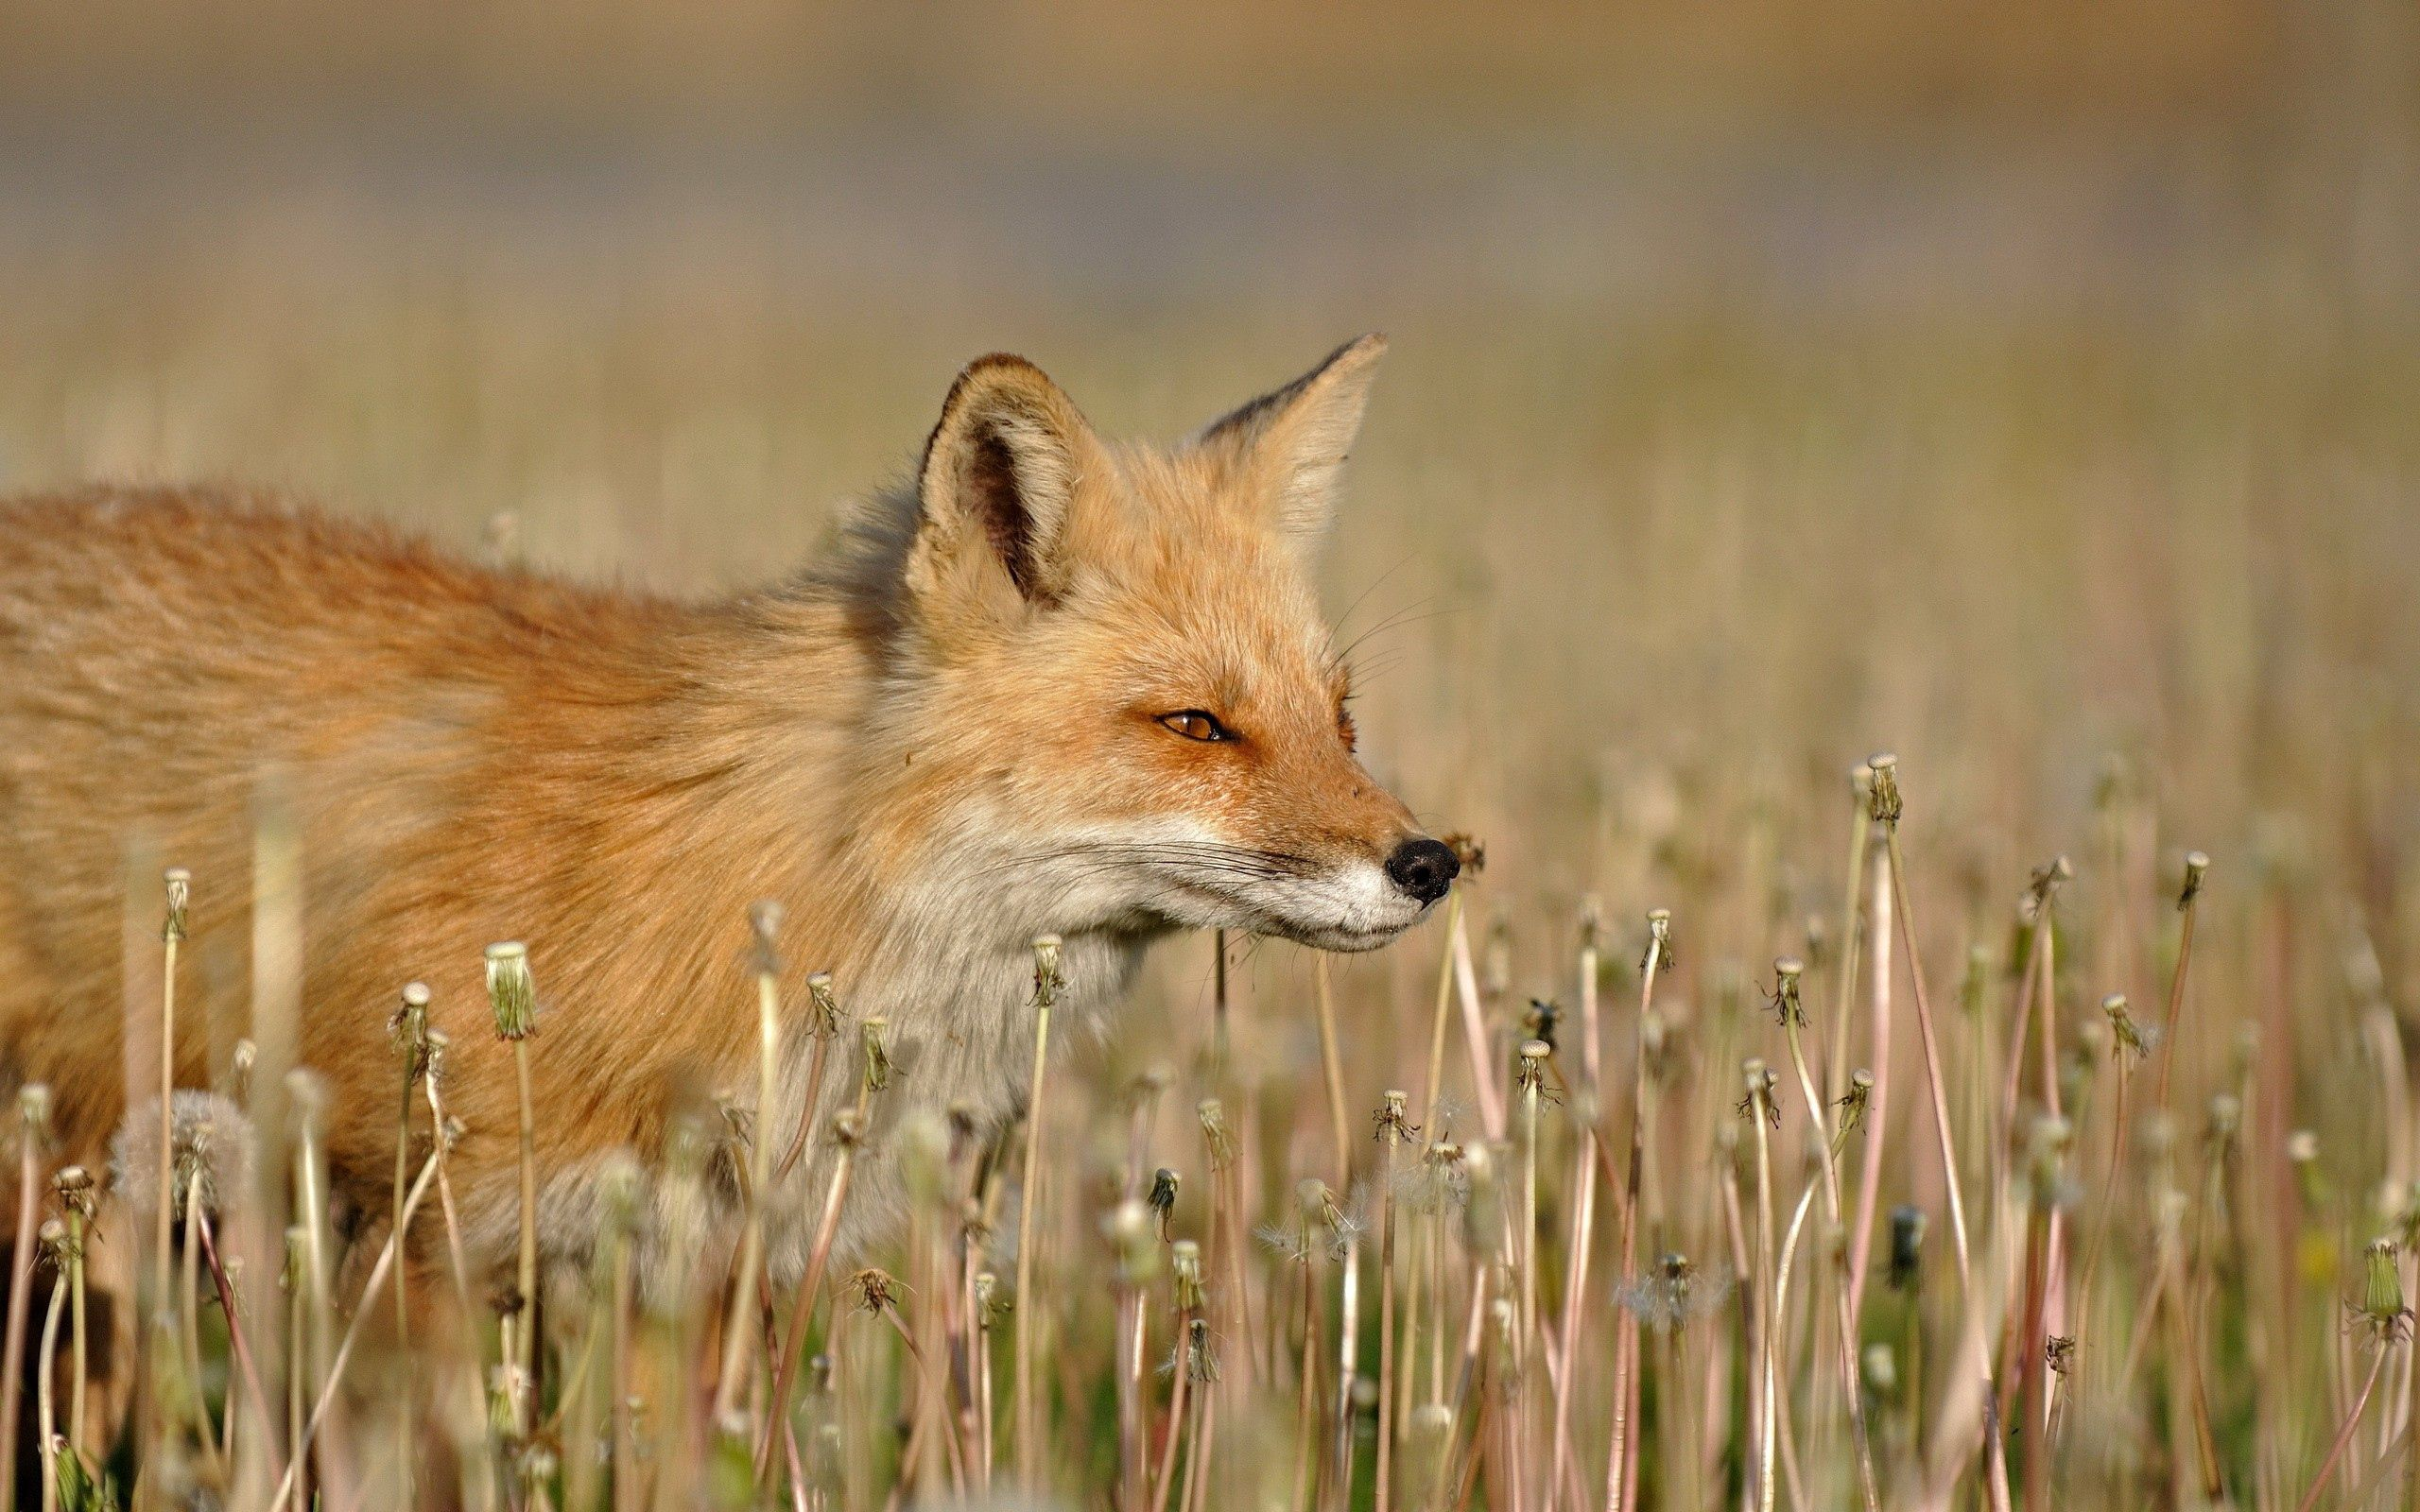 104174 download wallpaper Animals, Fox, Grass, Stroll, Hunting, Hunt screensavers and pictures for free